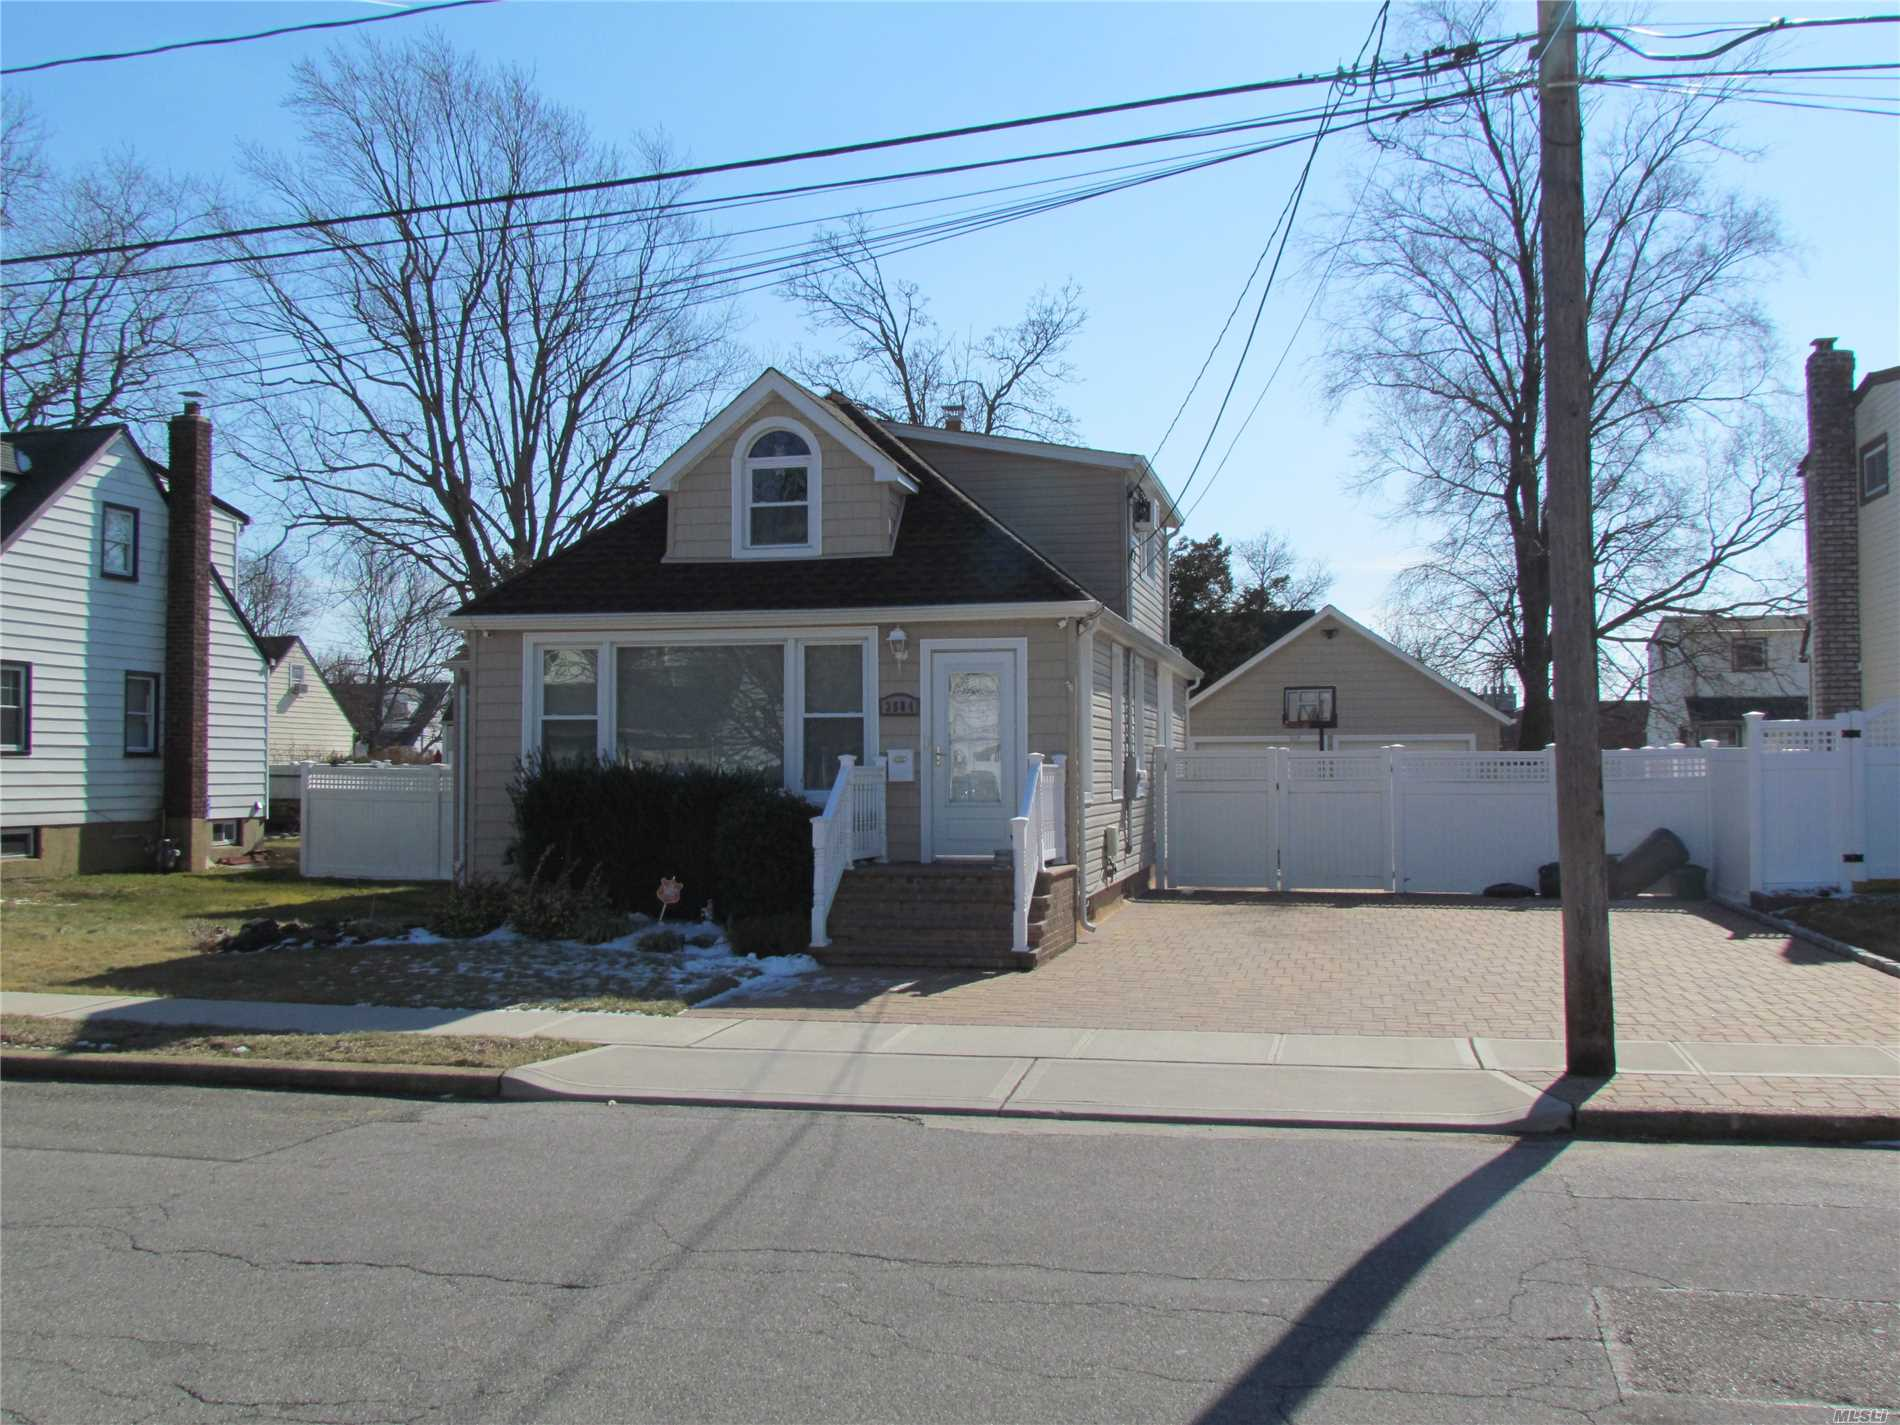 Make Sure You Bring Your Checkbook..This Is Gonna Fly.......Super Low Taxes.....Mint 3-4 Bedroom 2 Bath Cape...Totally Updated..1st Fl Master Suite..2 New Baths....Dynamite Expanded Eik W/ Island.And Stainless Appliances.....Finished Basement With Family Room And A Kids Playroom...Laundry Rm....Pavers Galore...Huuugggeeeee Brick Paver Driveway And Patio..W/ Awning...Detached 2 Car Garage..Fully Fenced...Mid Block...